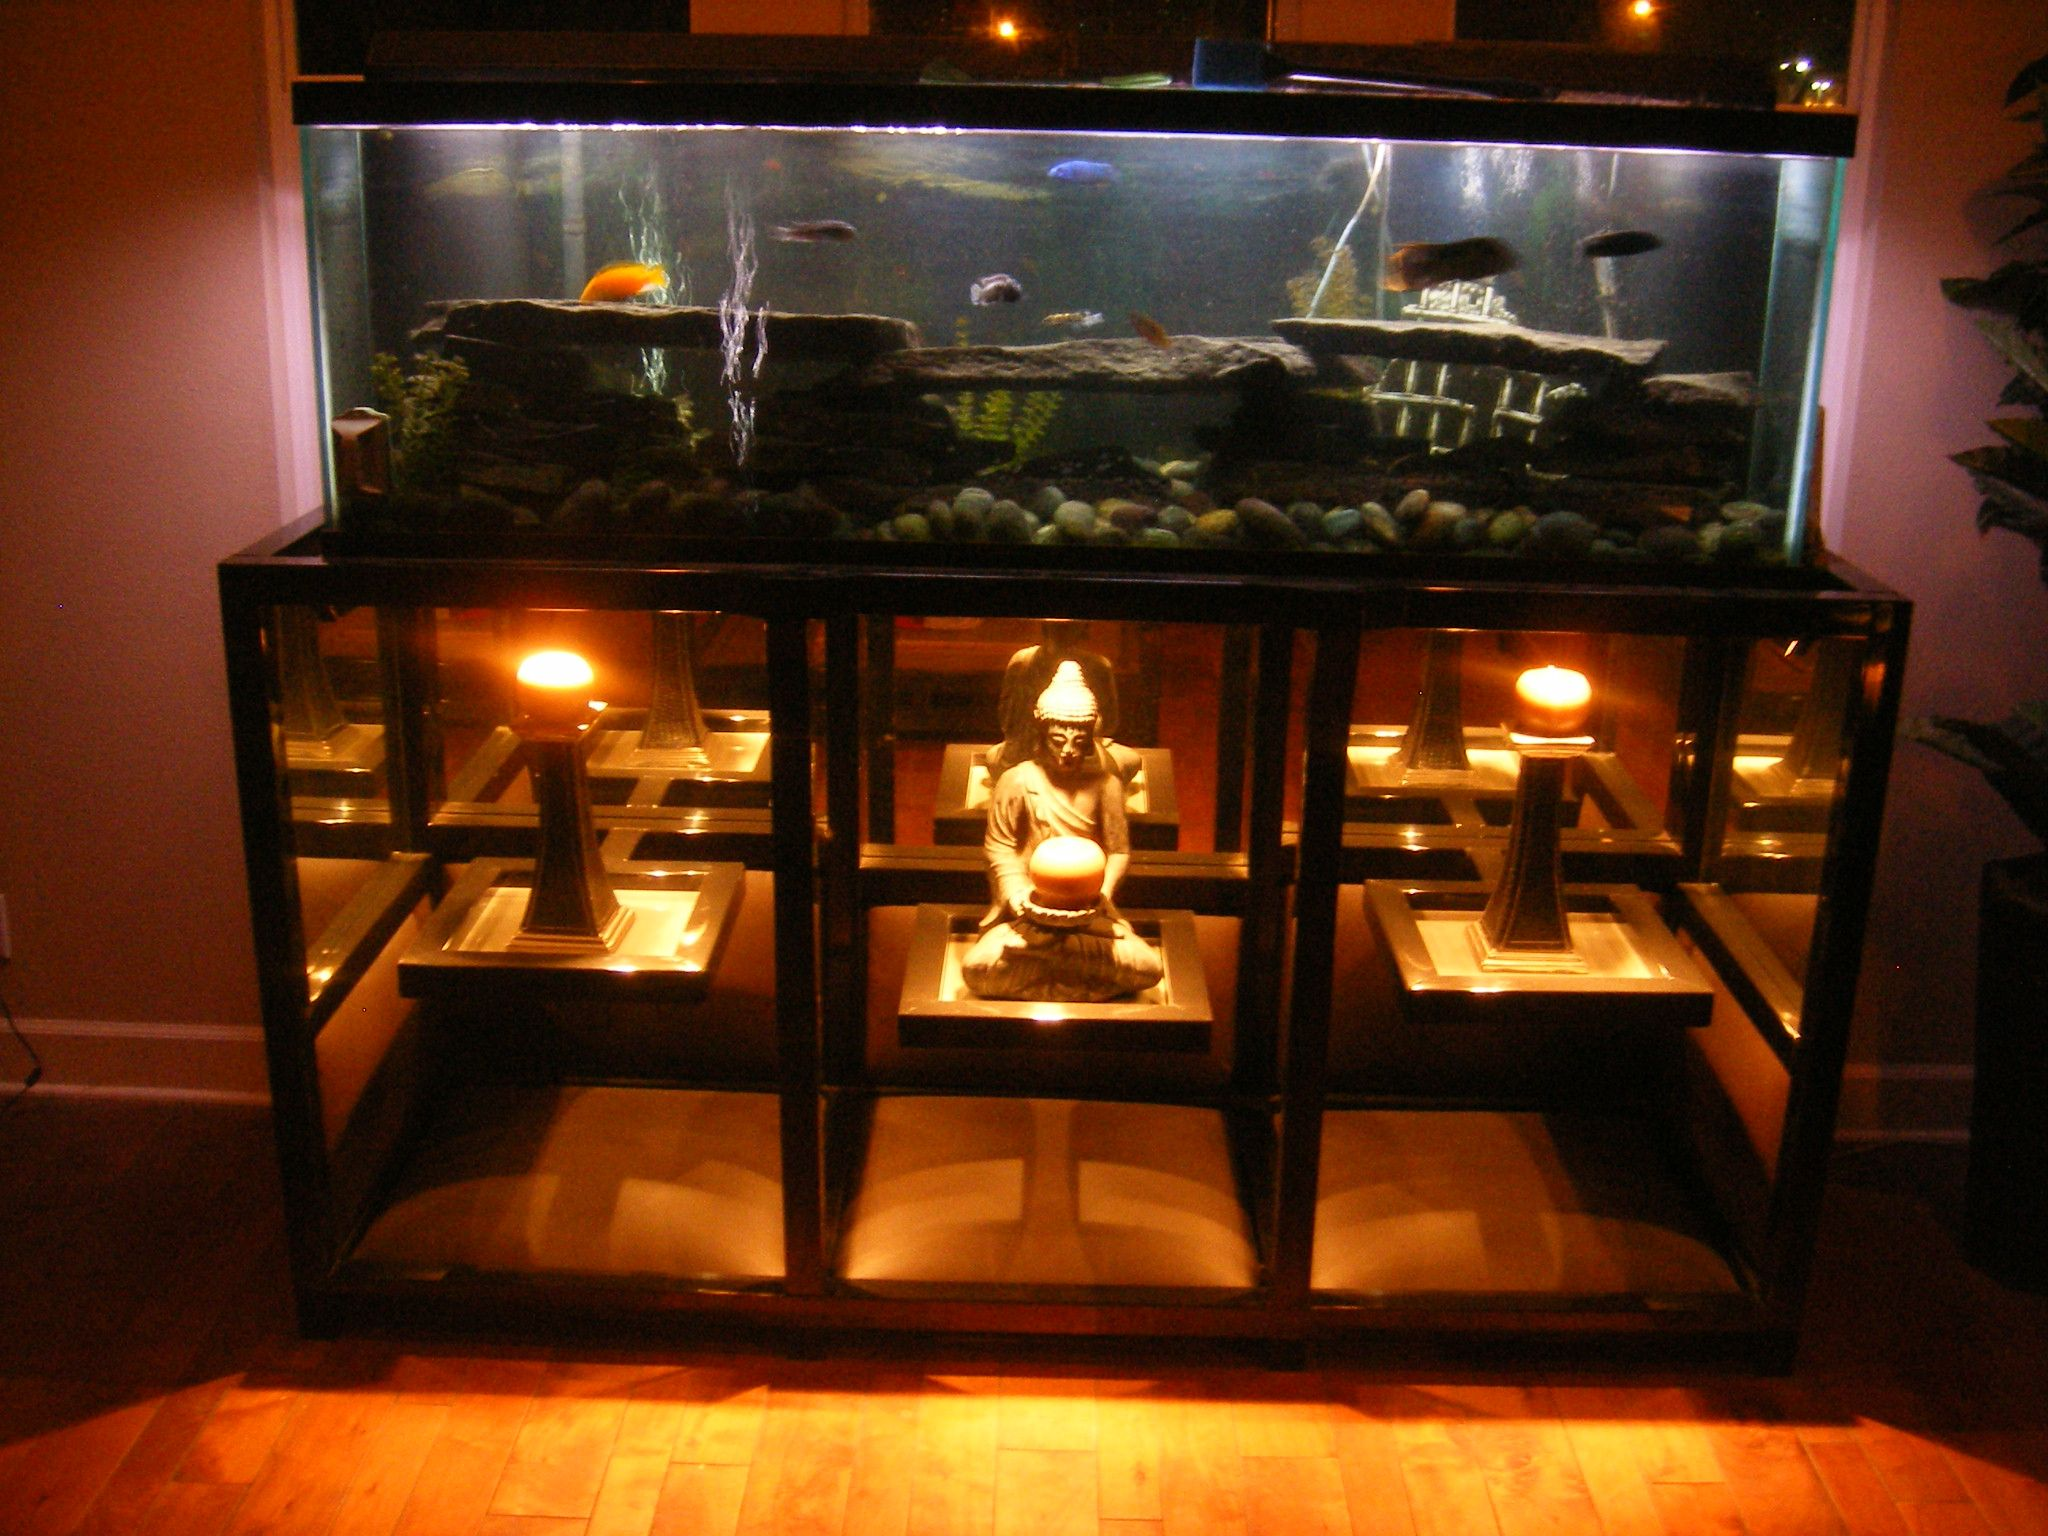 Fish tank tv stand - Custom Metal Wood Fabric Glass Tables 2 Square Tubing Tig Welded Aquarium Standcustom